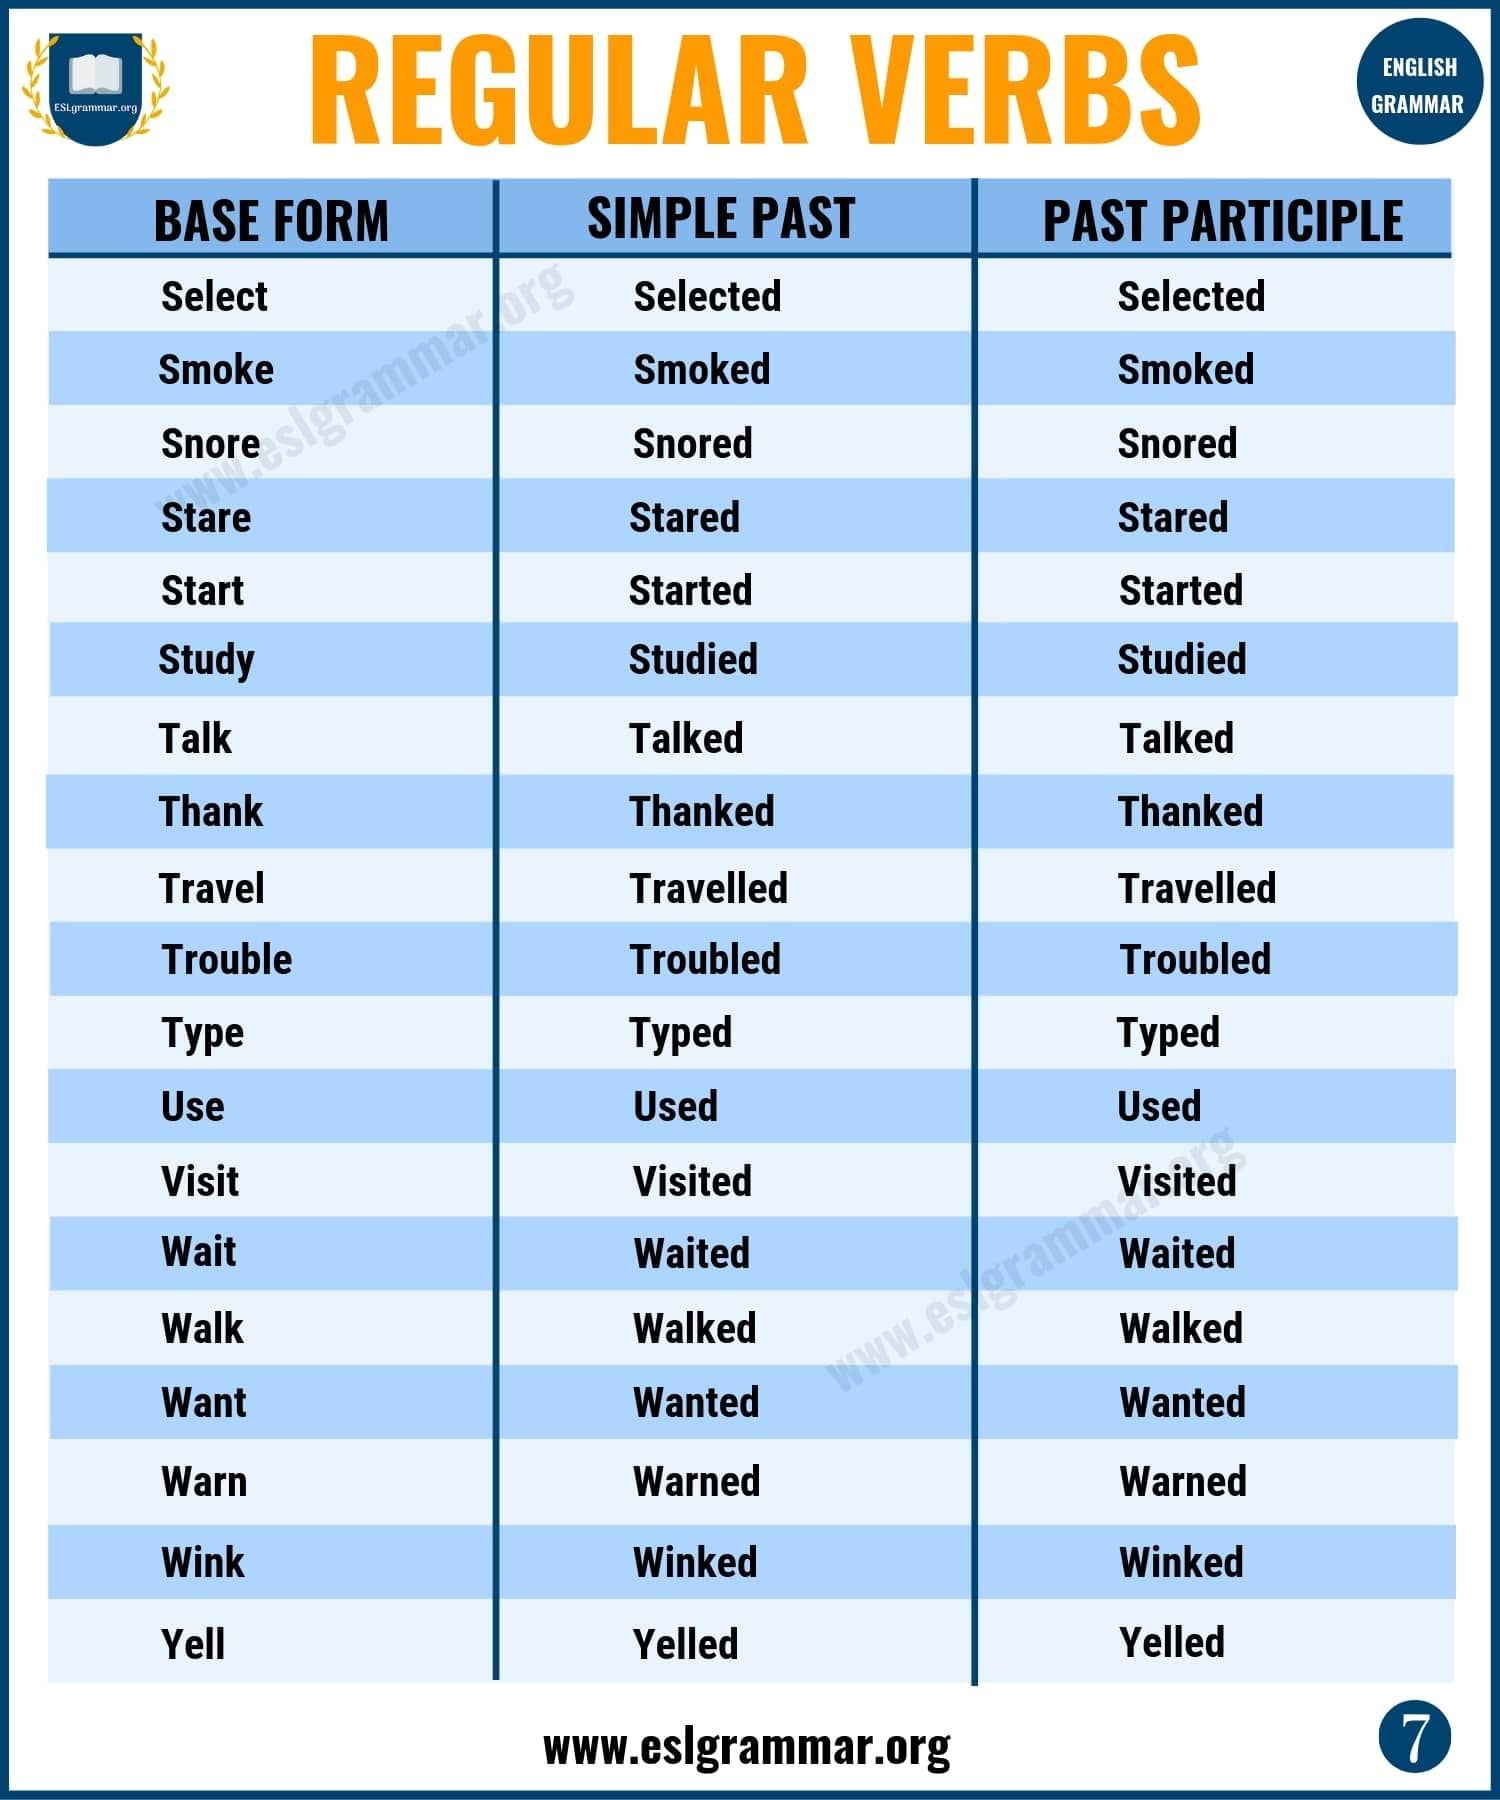 Regular Verbs A Big List Of Regular Verbs In English